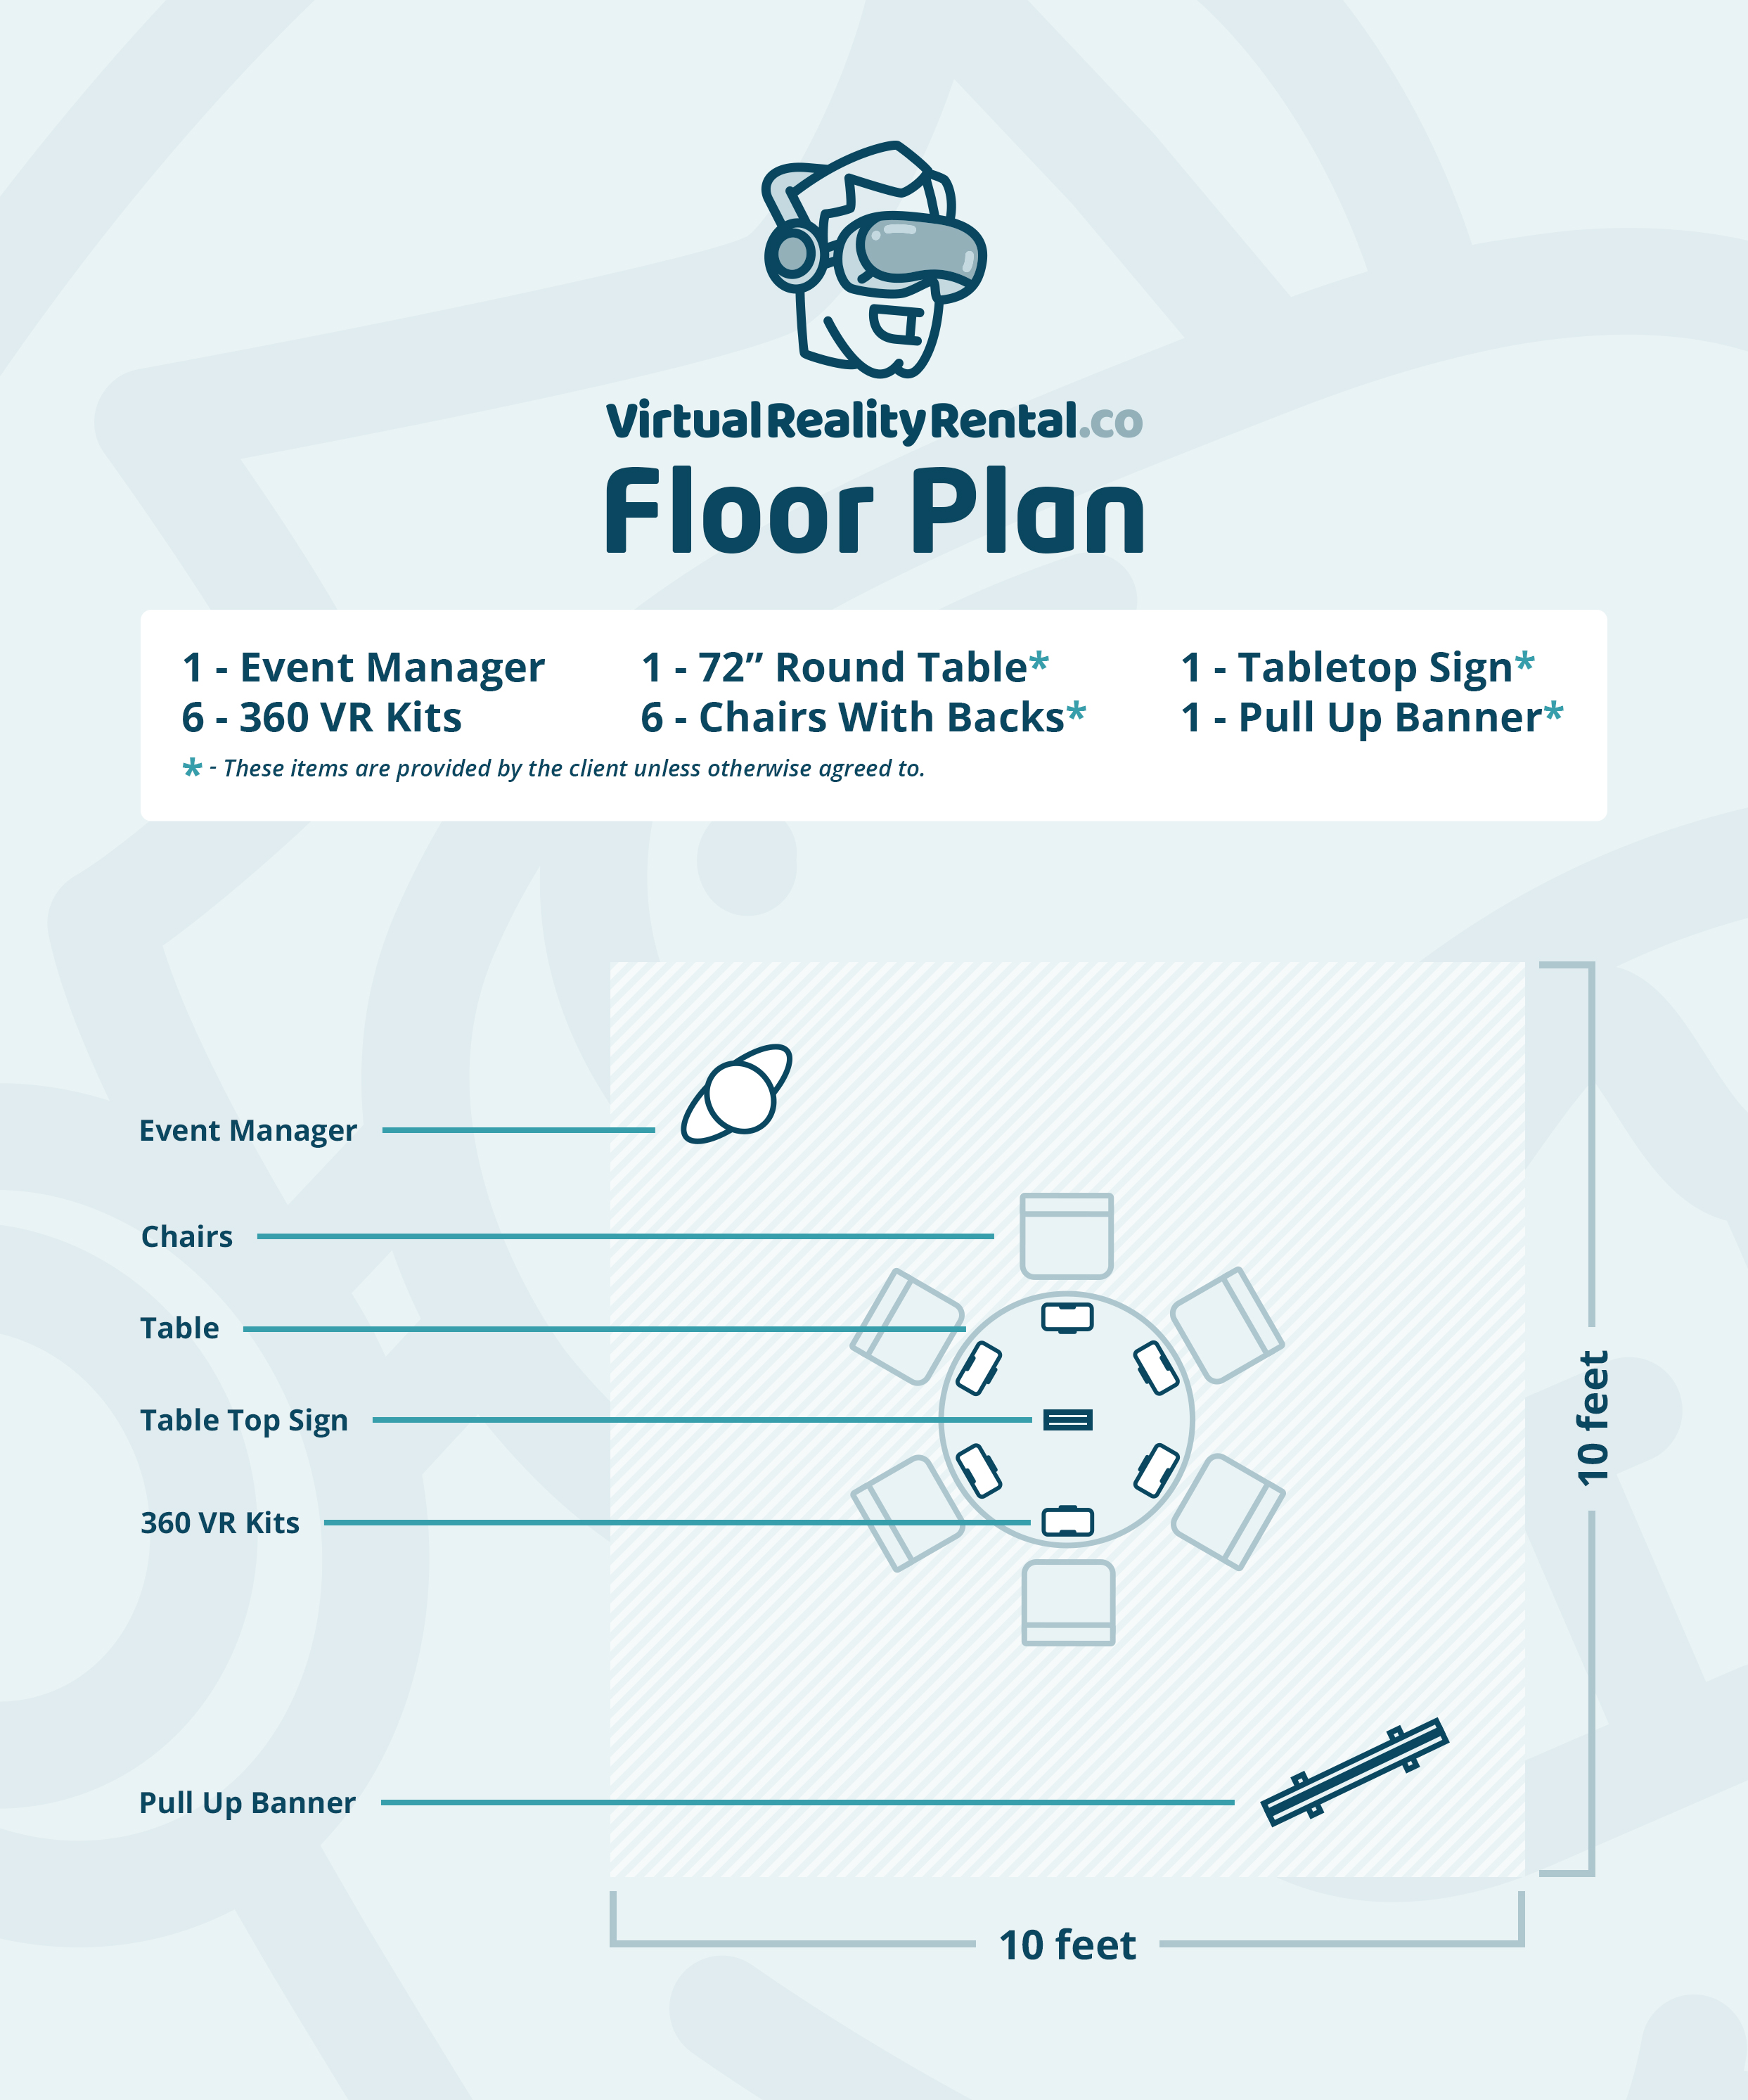 [Branded]_Floor_Plan_-_05_-_One_(1)_Event_Manager_+_Six_(6)__360s_VR_Kits (2).jpg